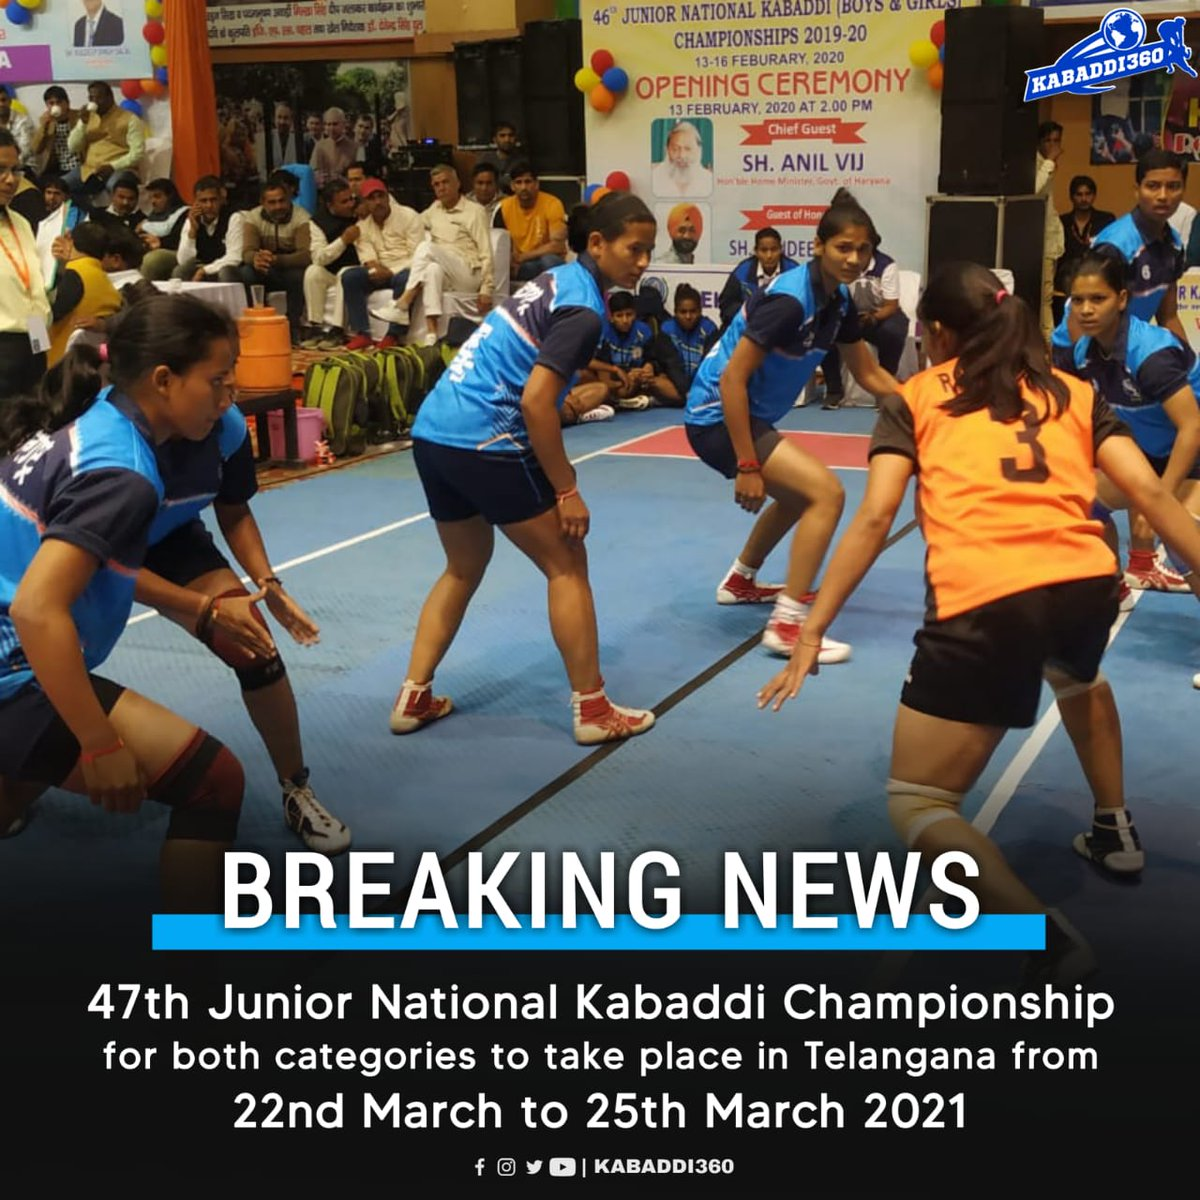 Note that the announced dates are subject to change under certain situation if the rules get changed due to COVID 🚨  #47thJuniorNationalKabaddiChampionship #BreakingNews #Kabaddi360